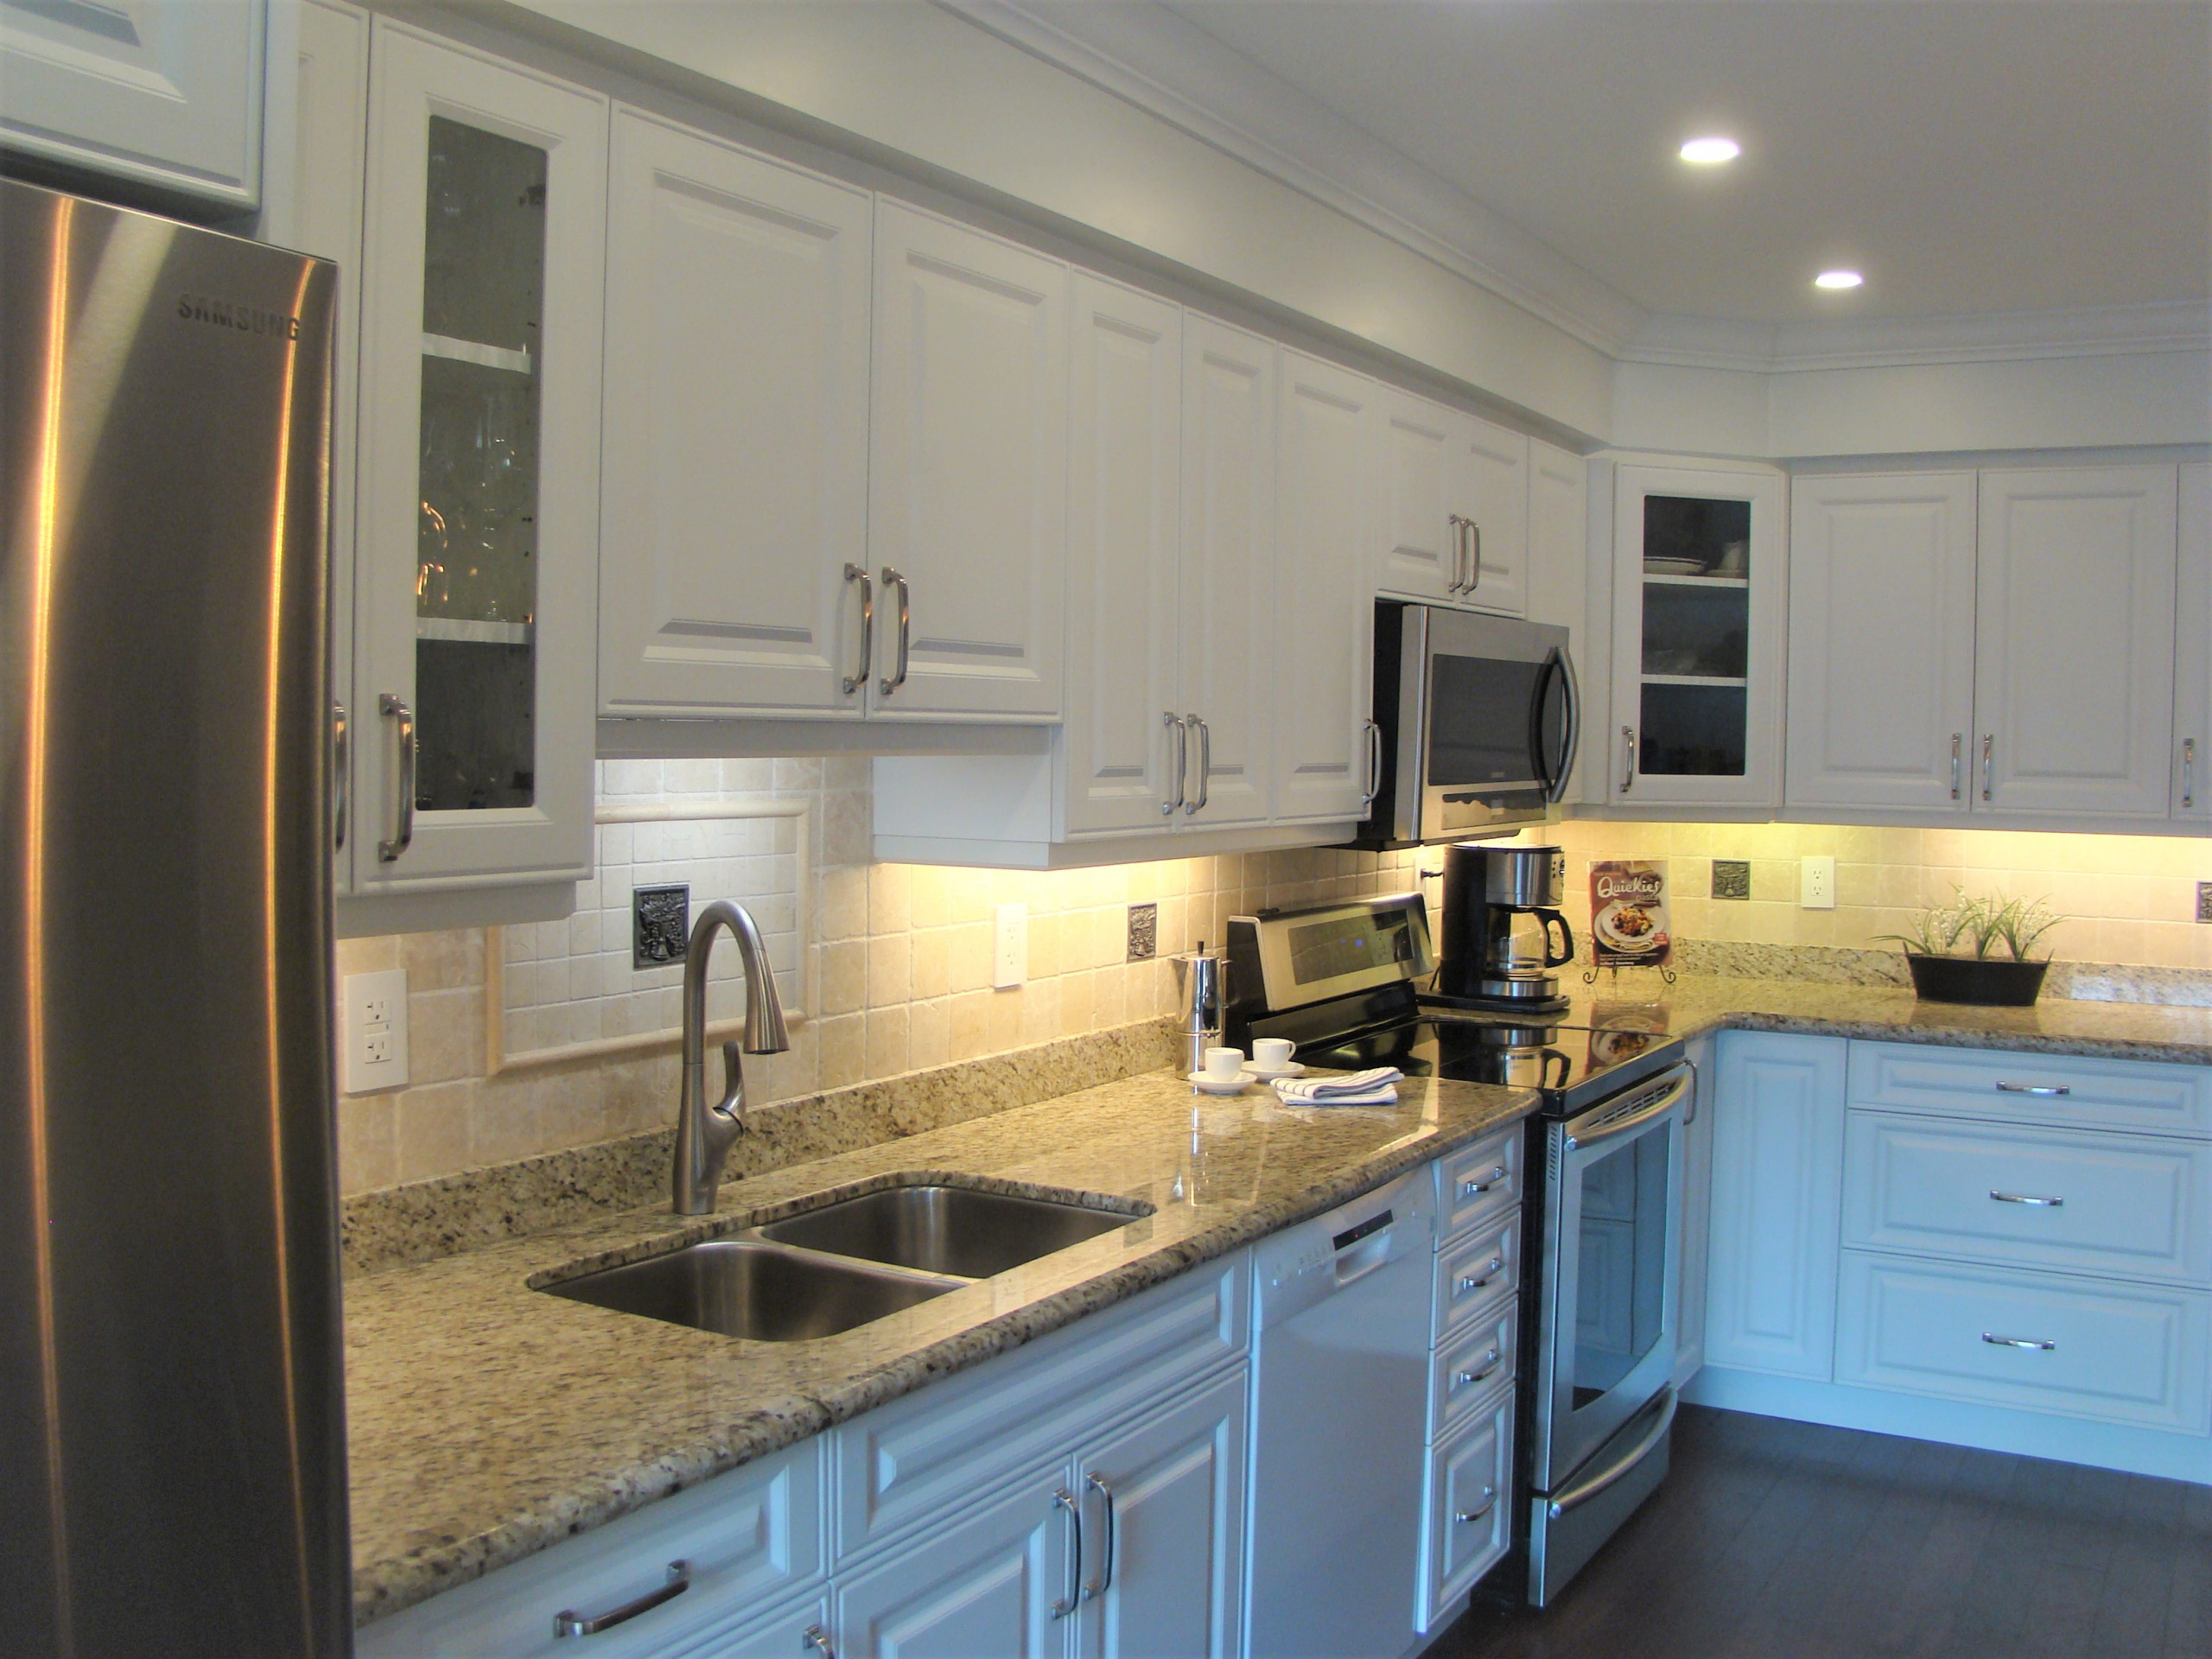 Kitchen wall removal to introduce Island